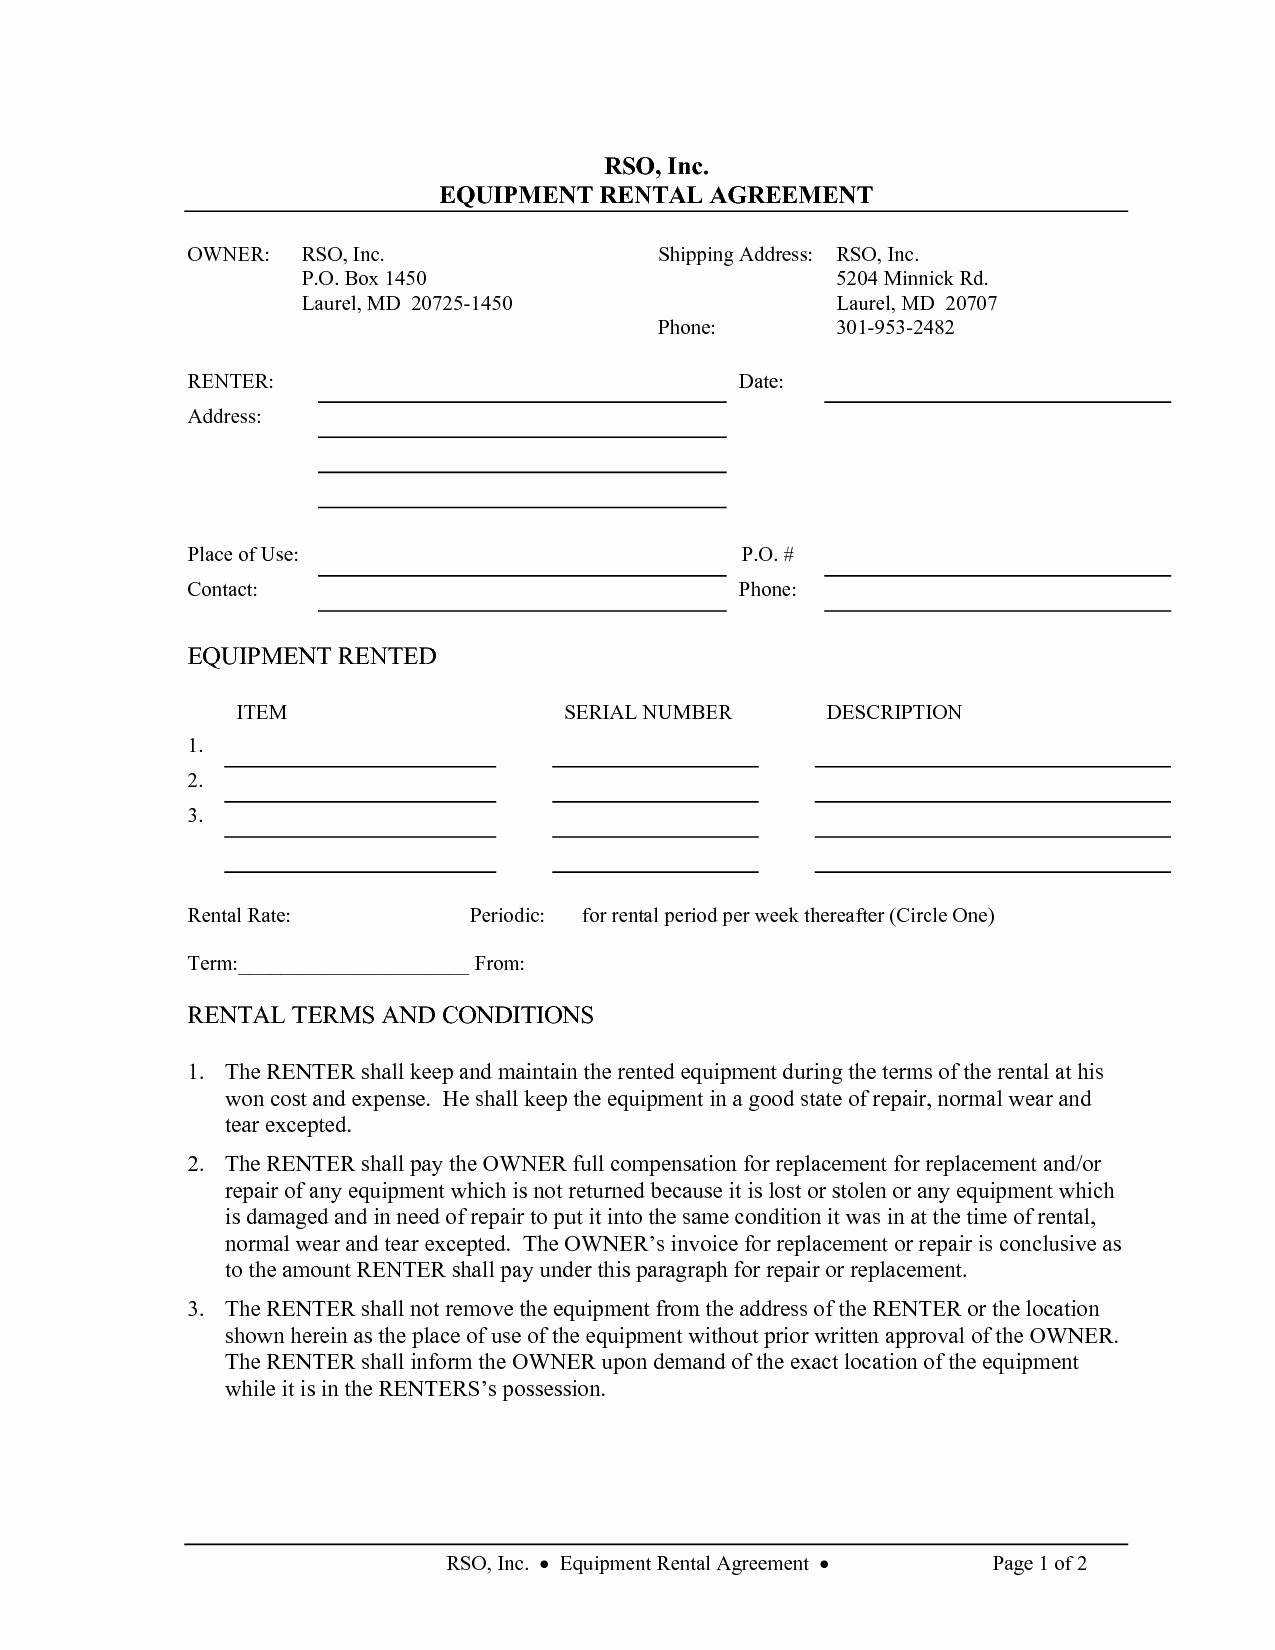 Party Rental Agreement Template New Equipment Rental Contract Template